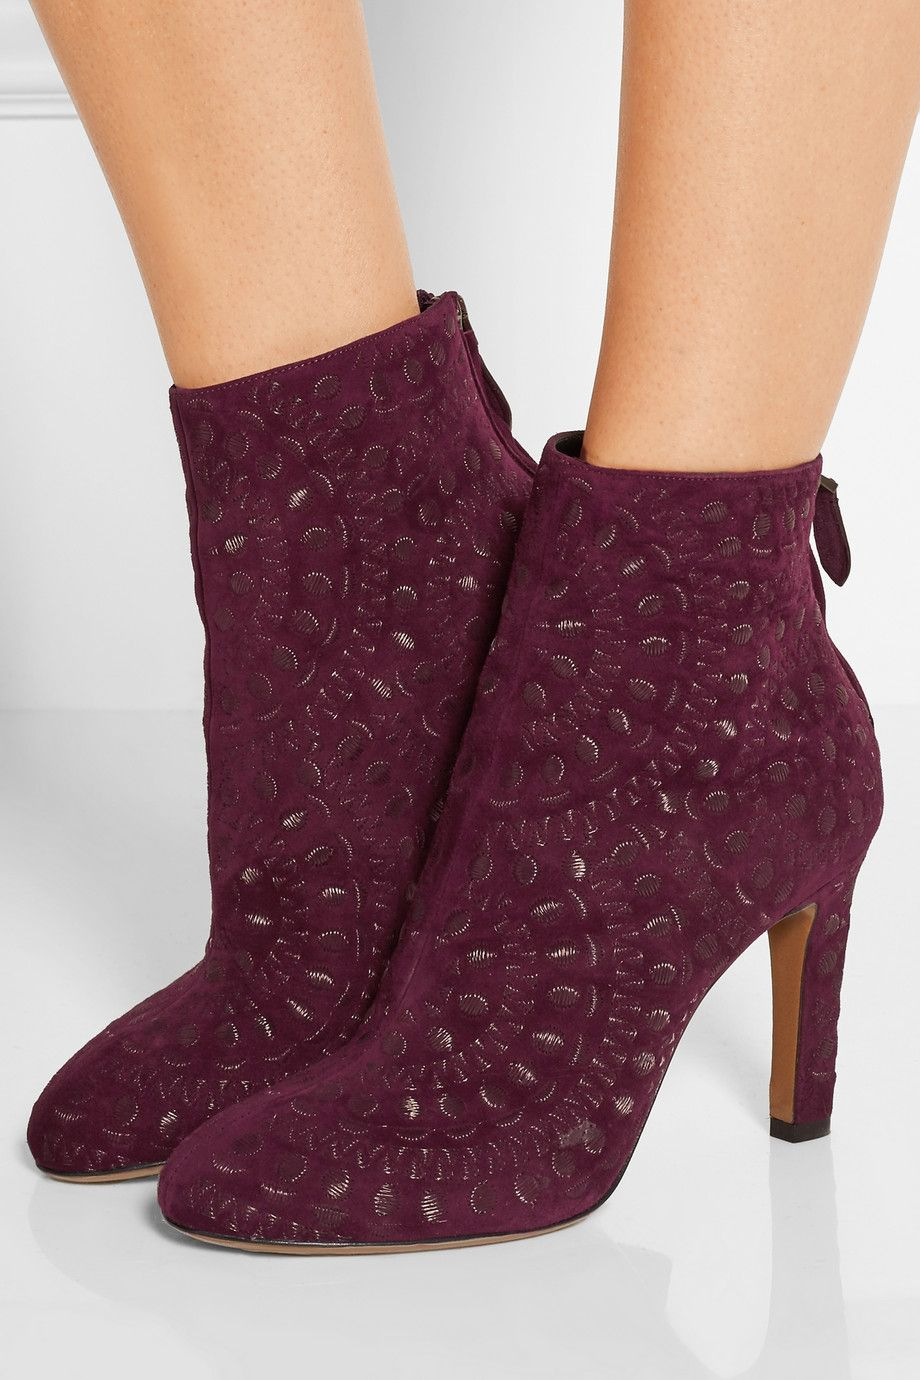 for sale Alaïa Embossed Leather Booties discount price Vt7BG